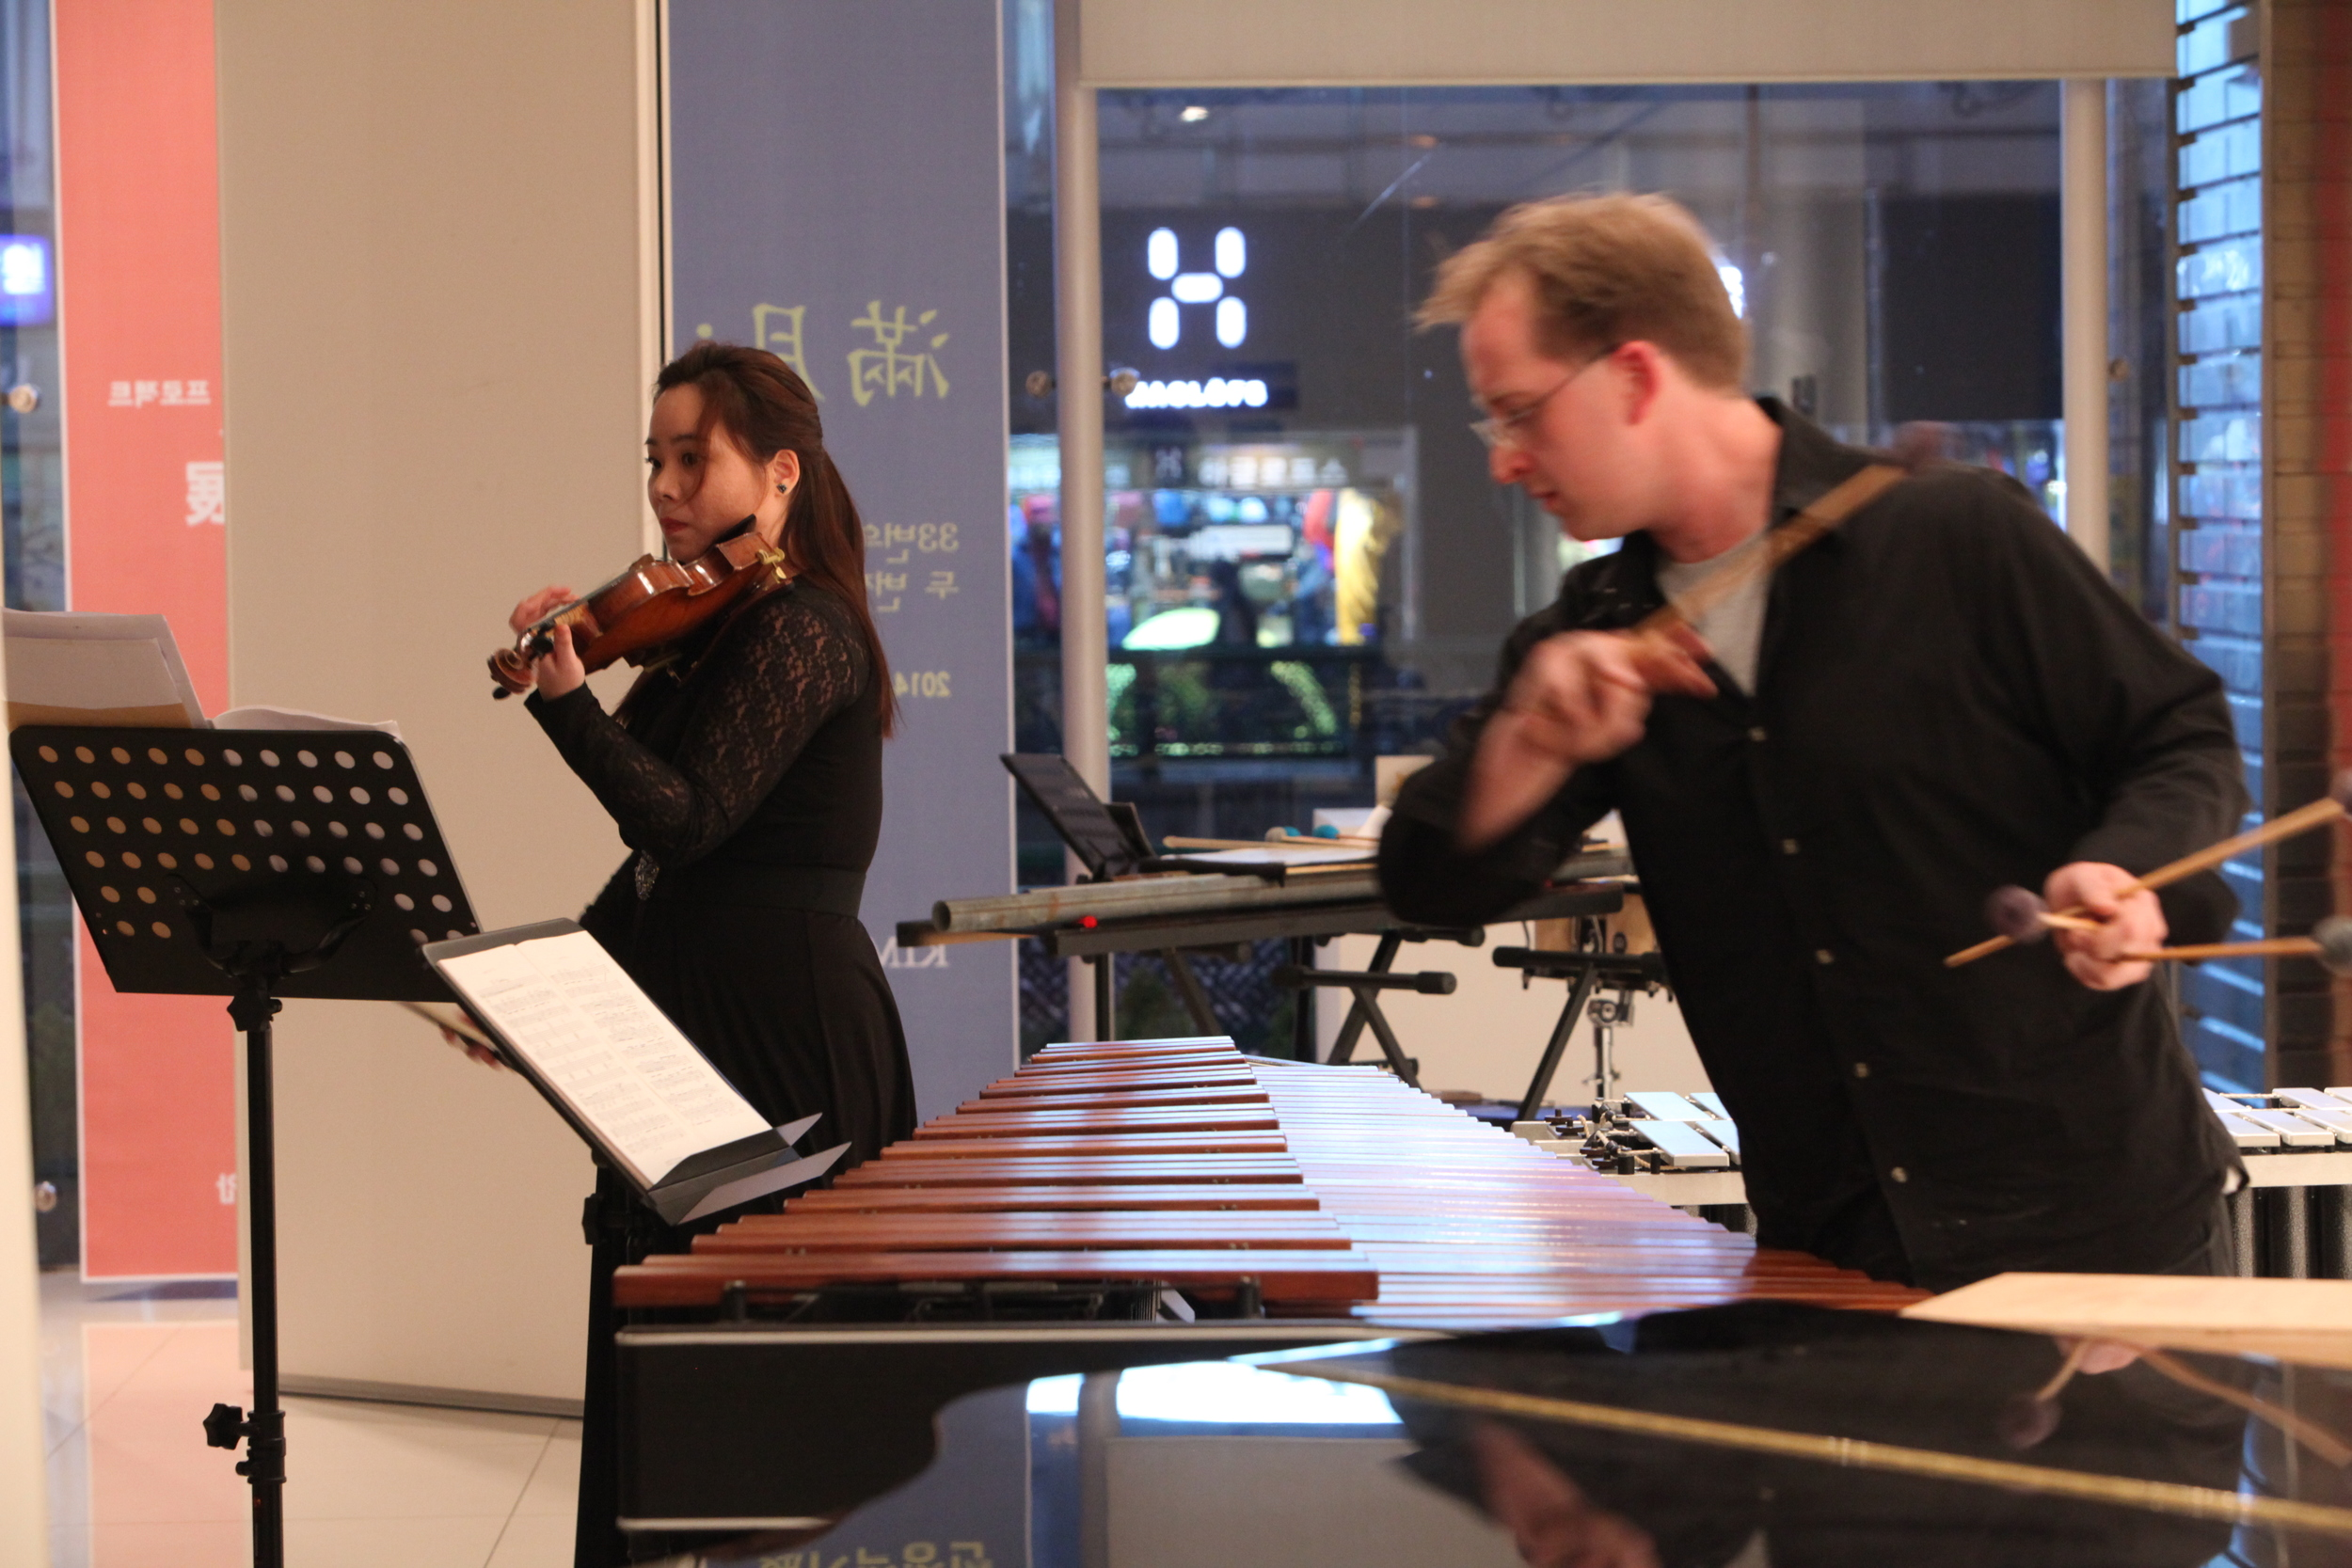 Kevin and Jung-Hwa Rhee, performing Piazzolla's L'Histoire du Tango at Yian Art Gallery in Daejeon, South Korea